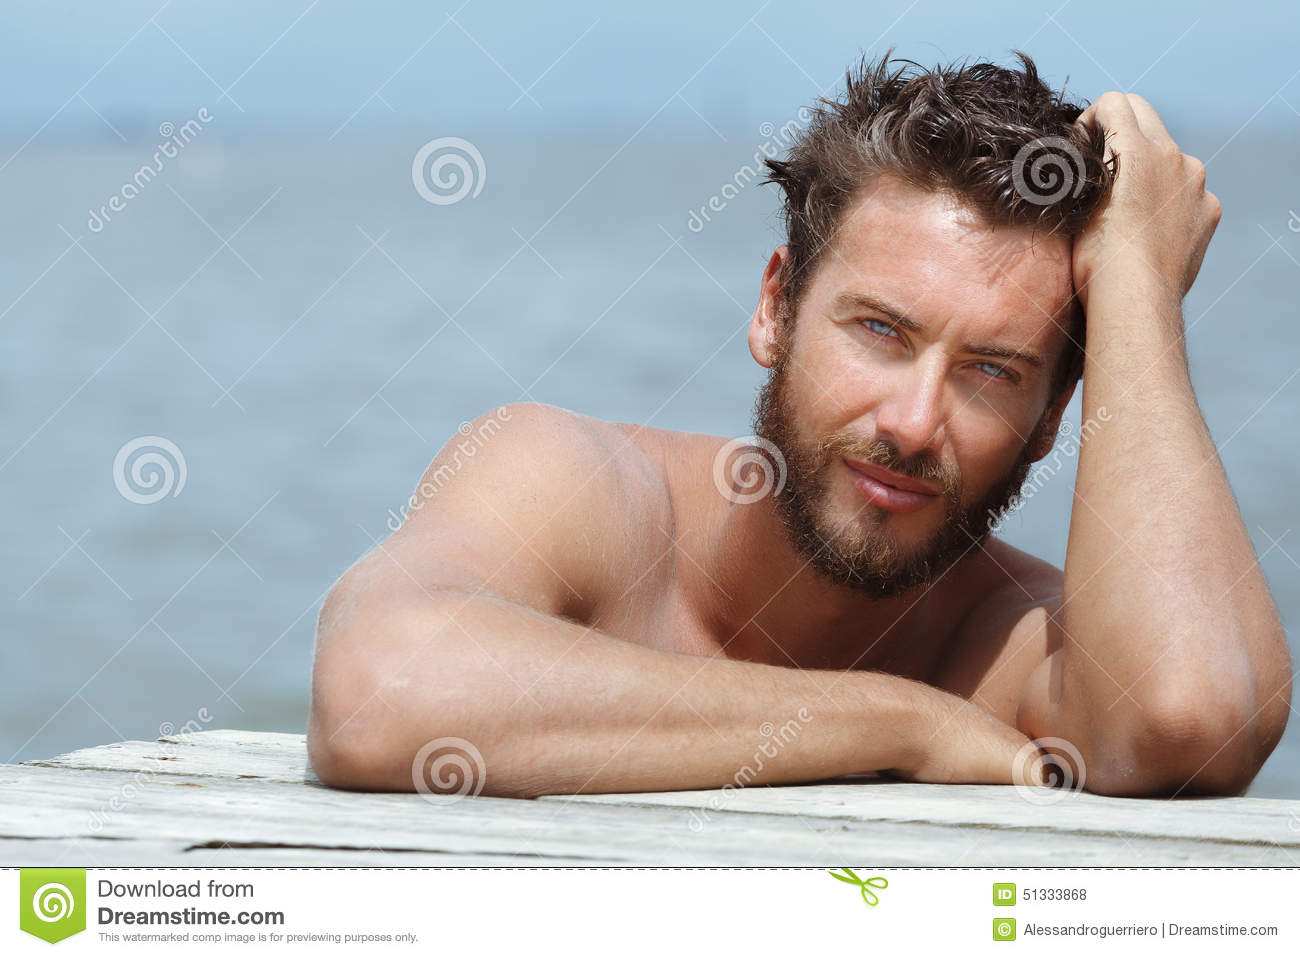 Handsome Man with No Shirt at the Sea